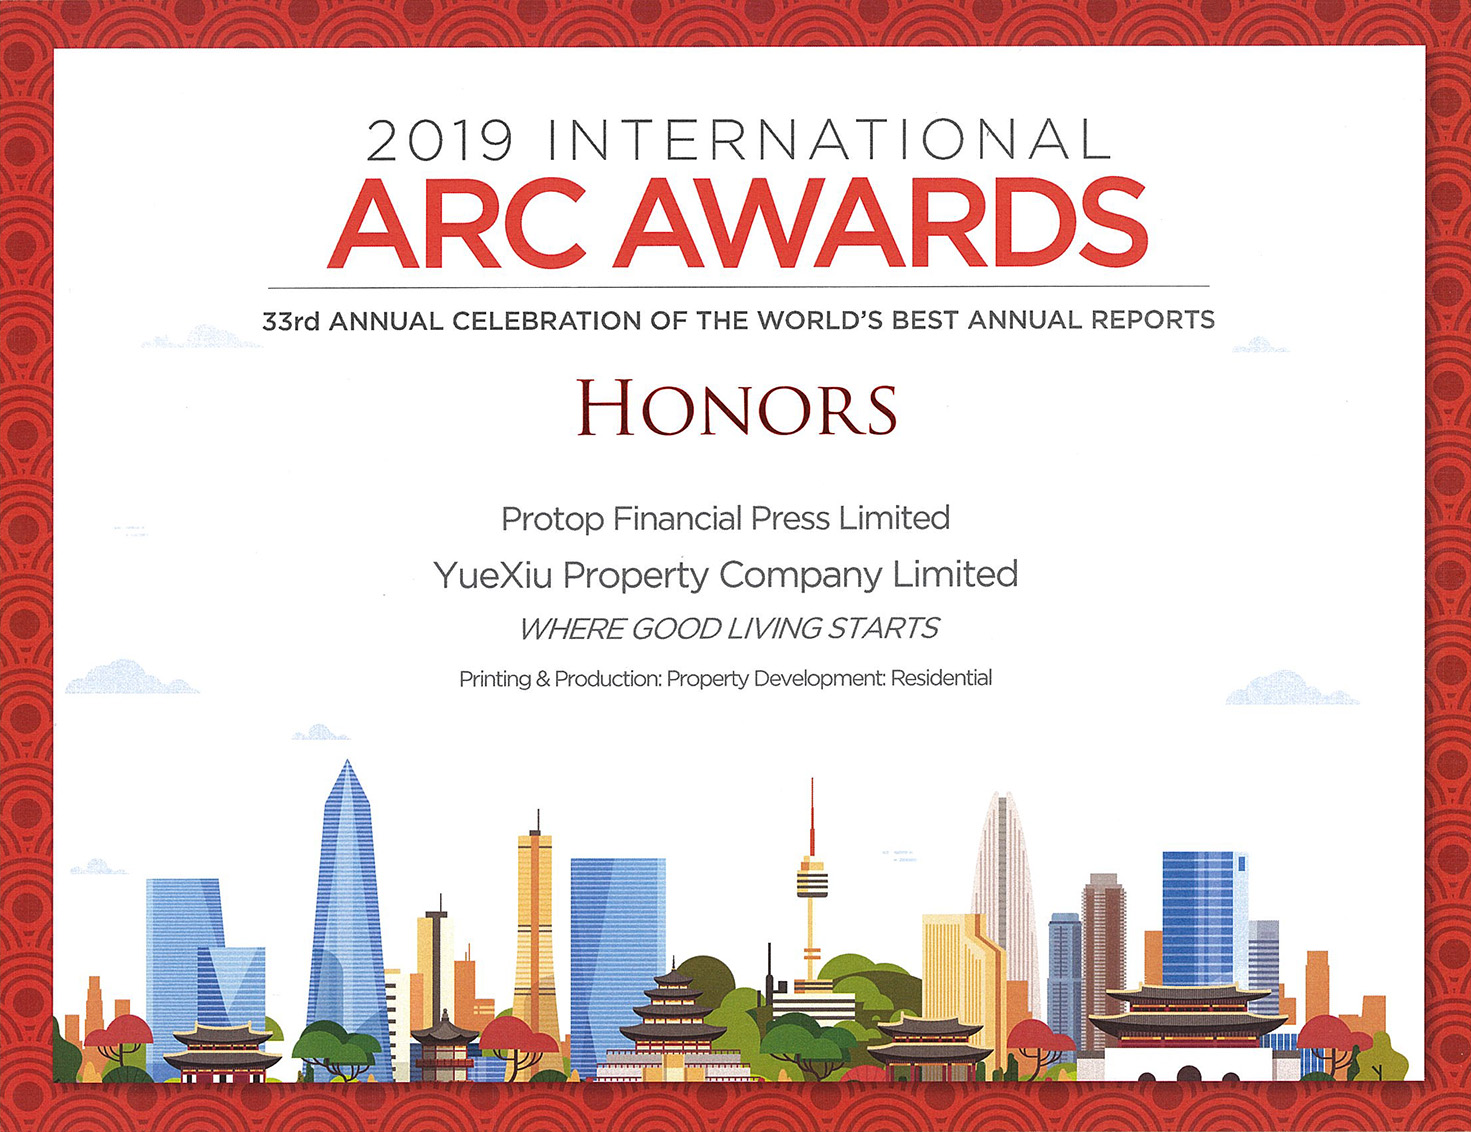 越秀地產股份有限公司 – 2019 ARC AWARDS HONORS Printing & Production: Property Development: Residential